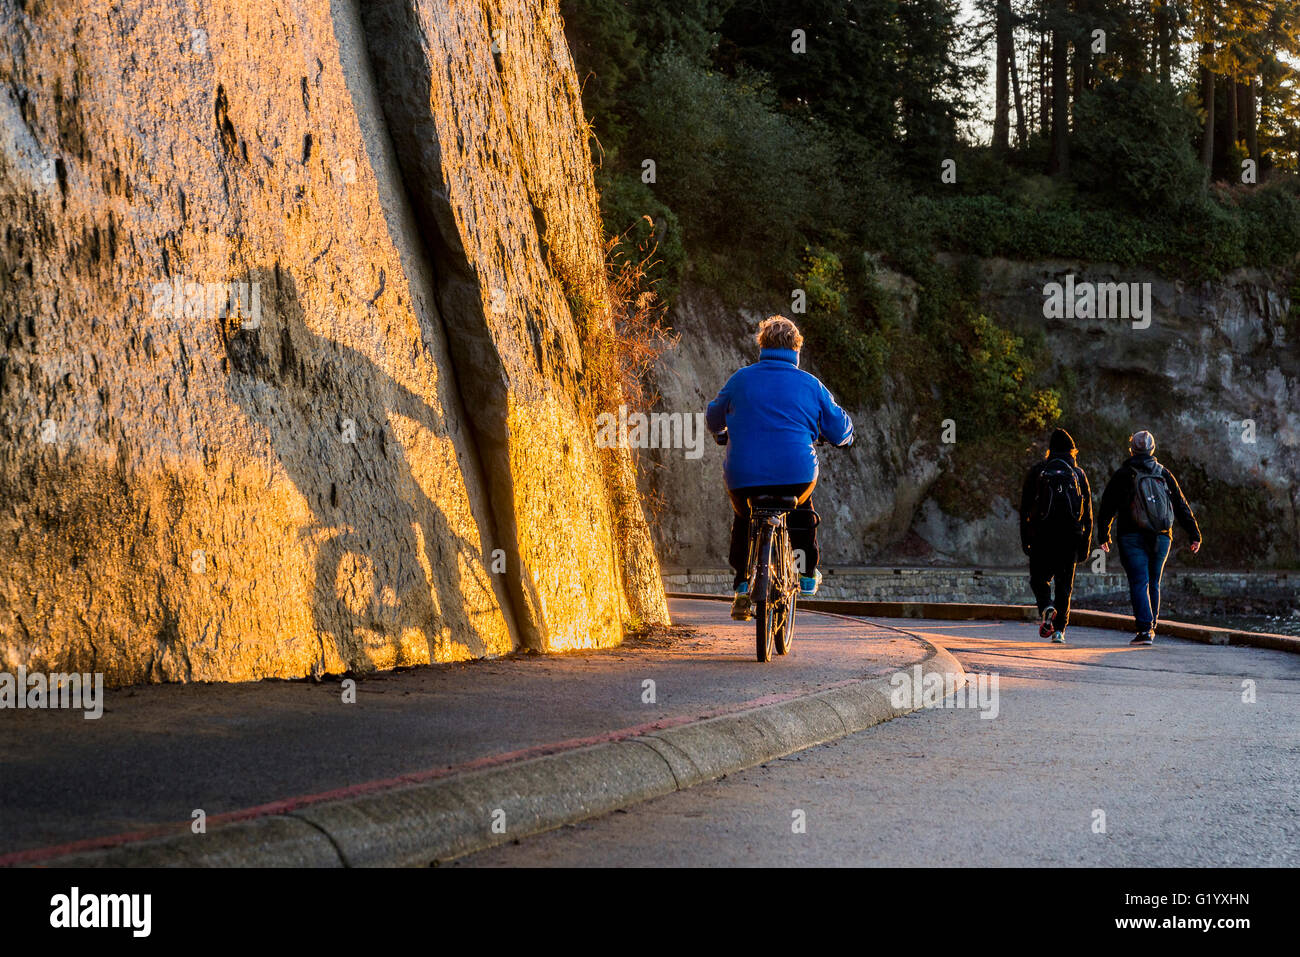 Bicyclist, Stanley Park sea wall at sunset, Vancouver, British Columbia, Canada - Stock Image